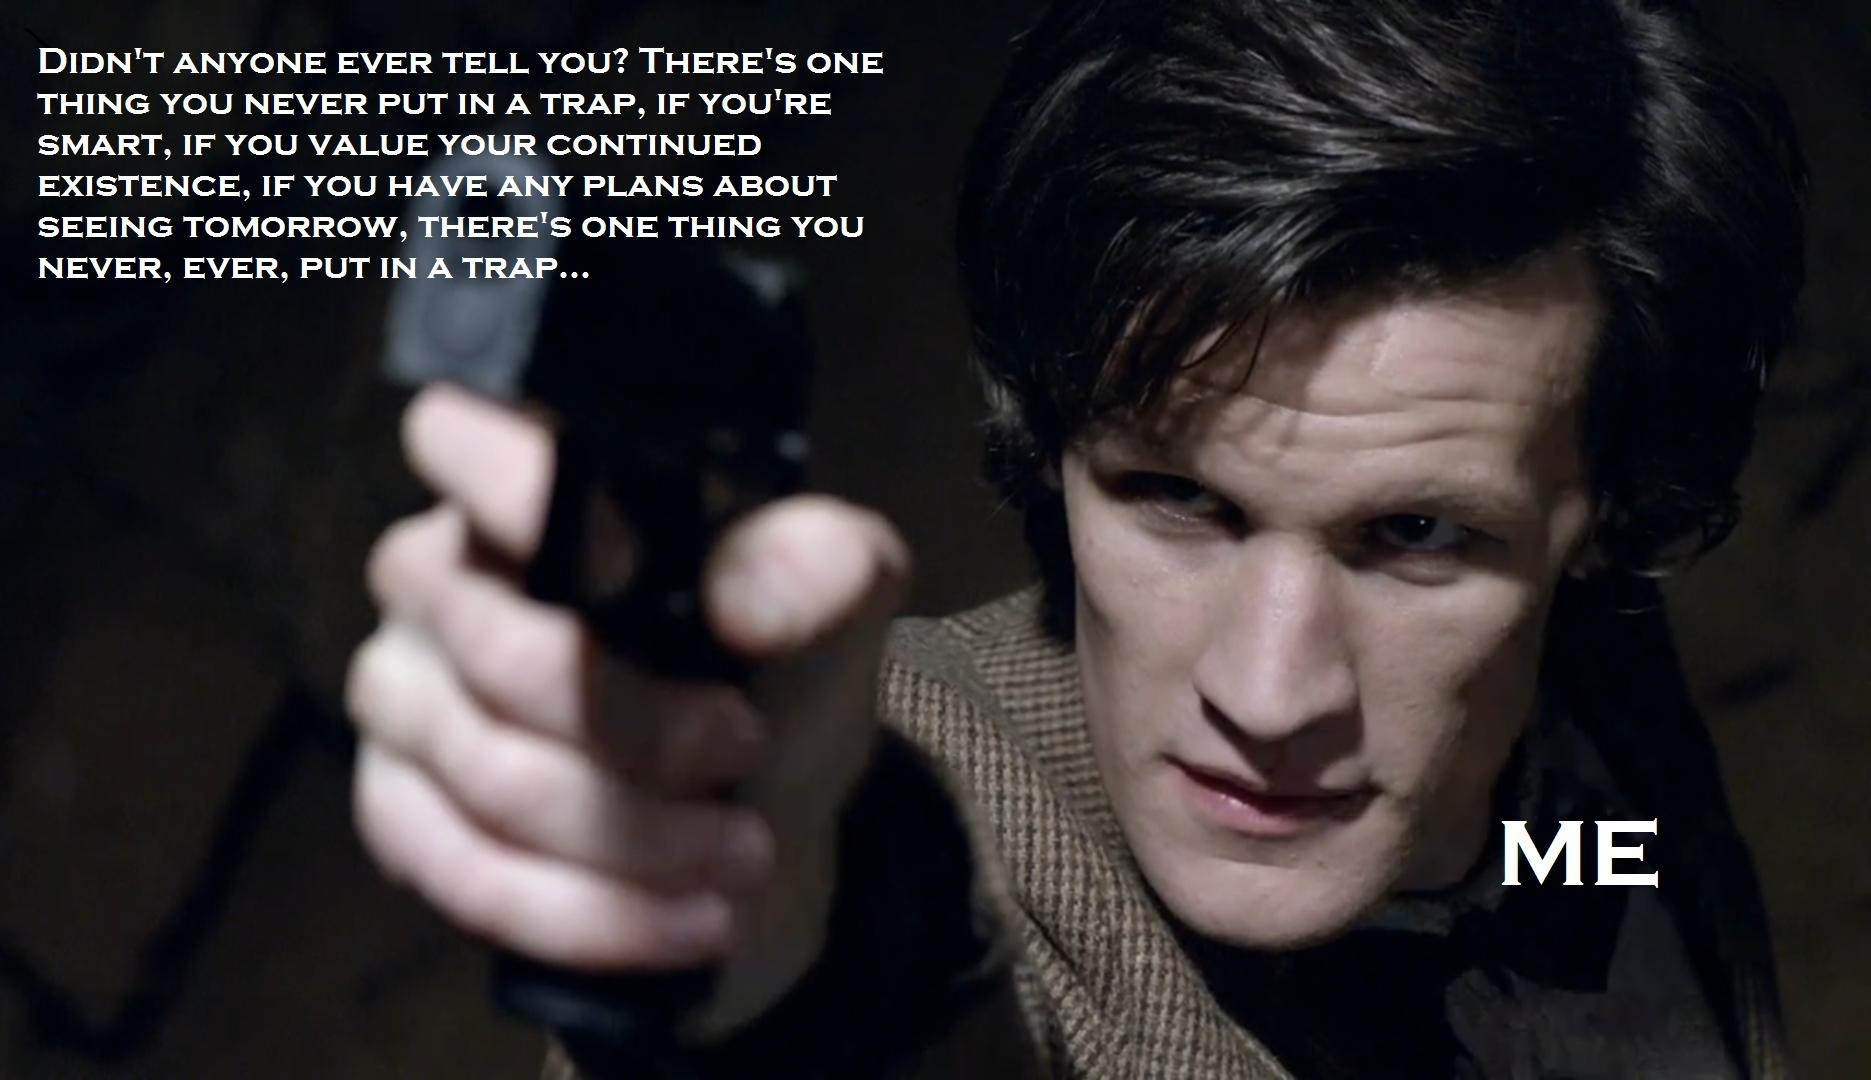 text matt smith bbc eleventh doctor doctor who 1871x1080 wallpaper 1871x1080